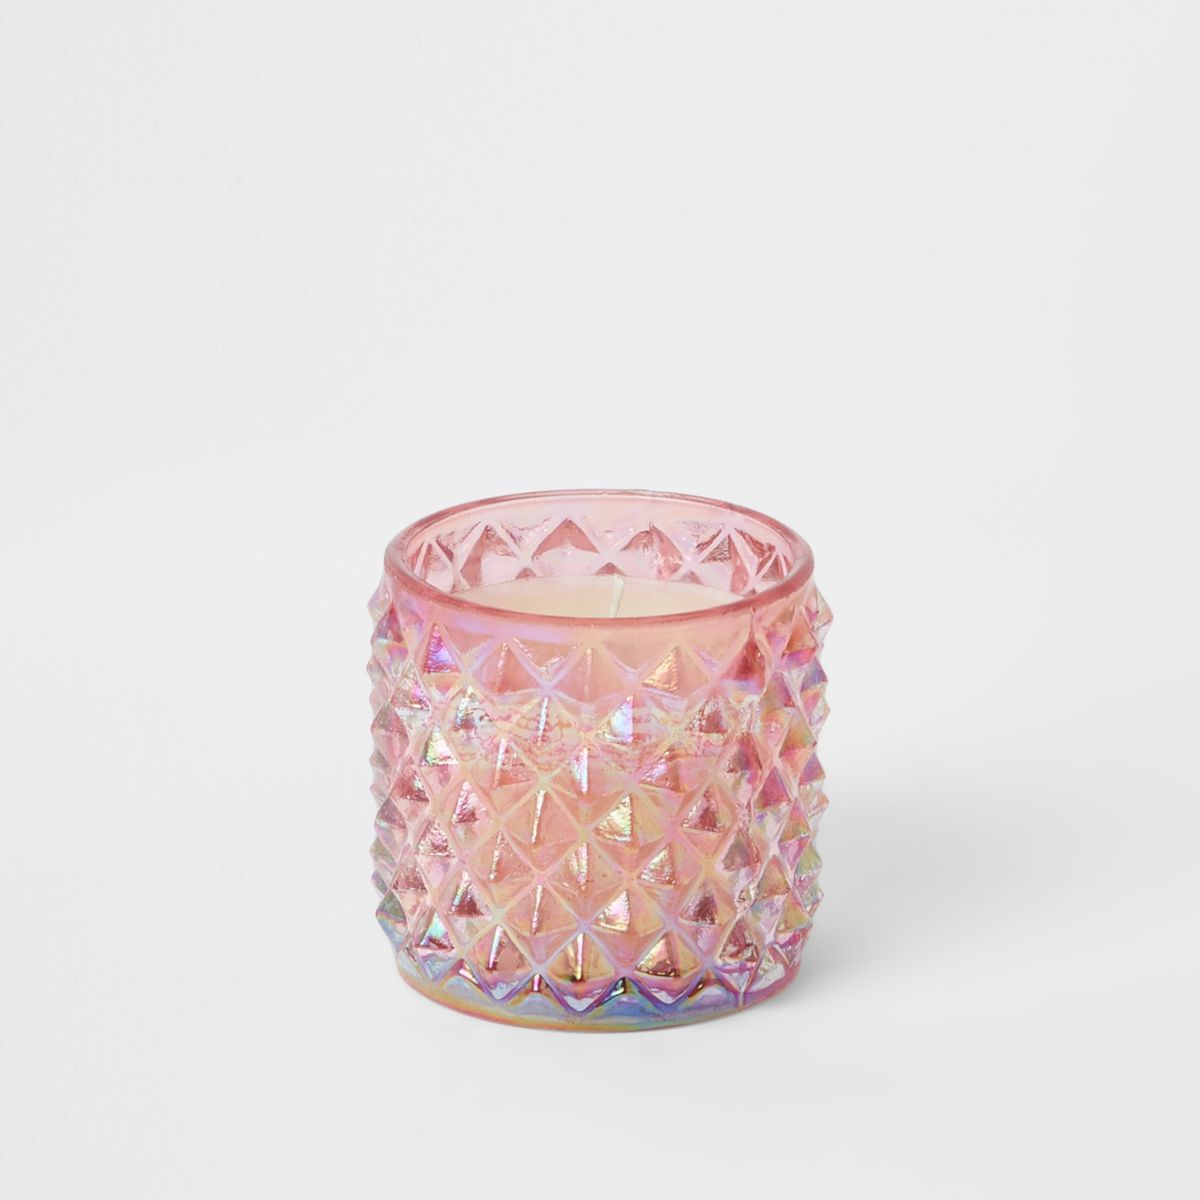 Pink wax filled glass candle